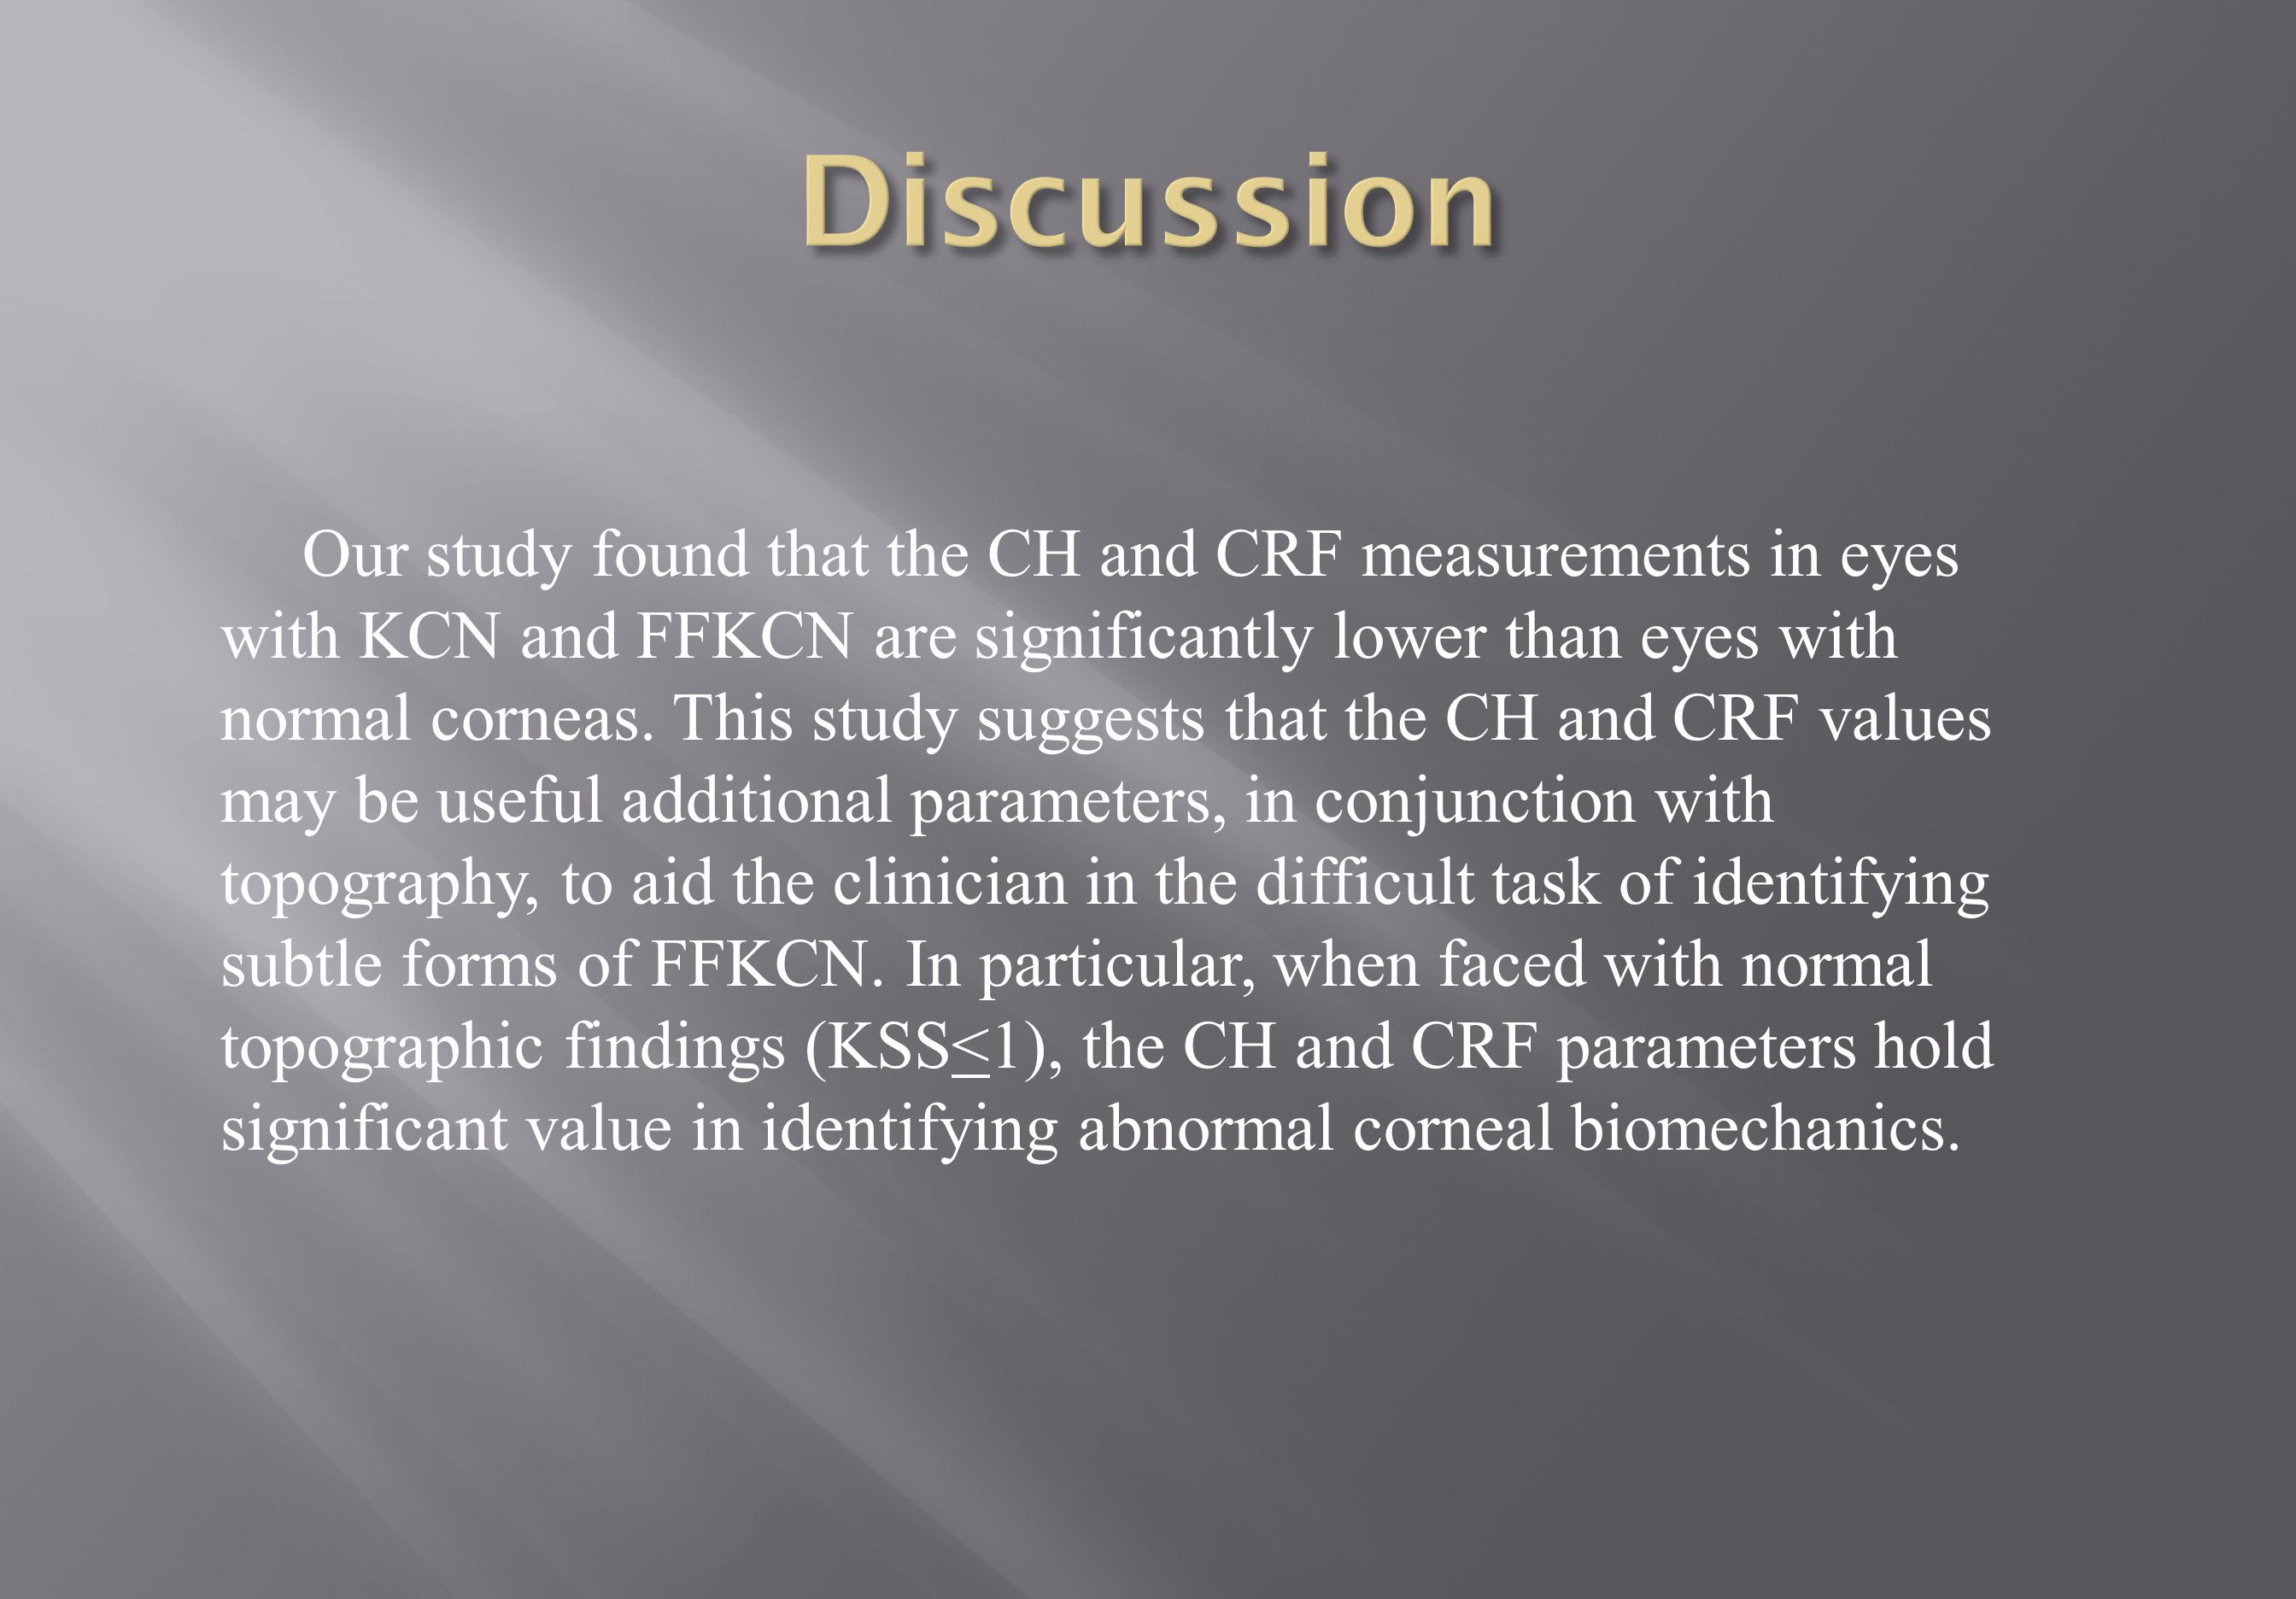 Our study found that the CH and CRF measurements in eyes with KCN and FFKCN are significantly lower than eyes with normal corneas.